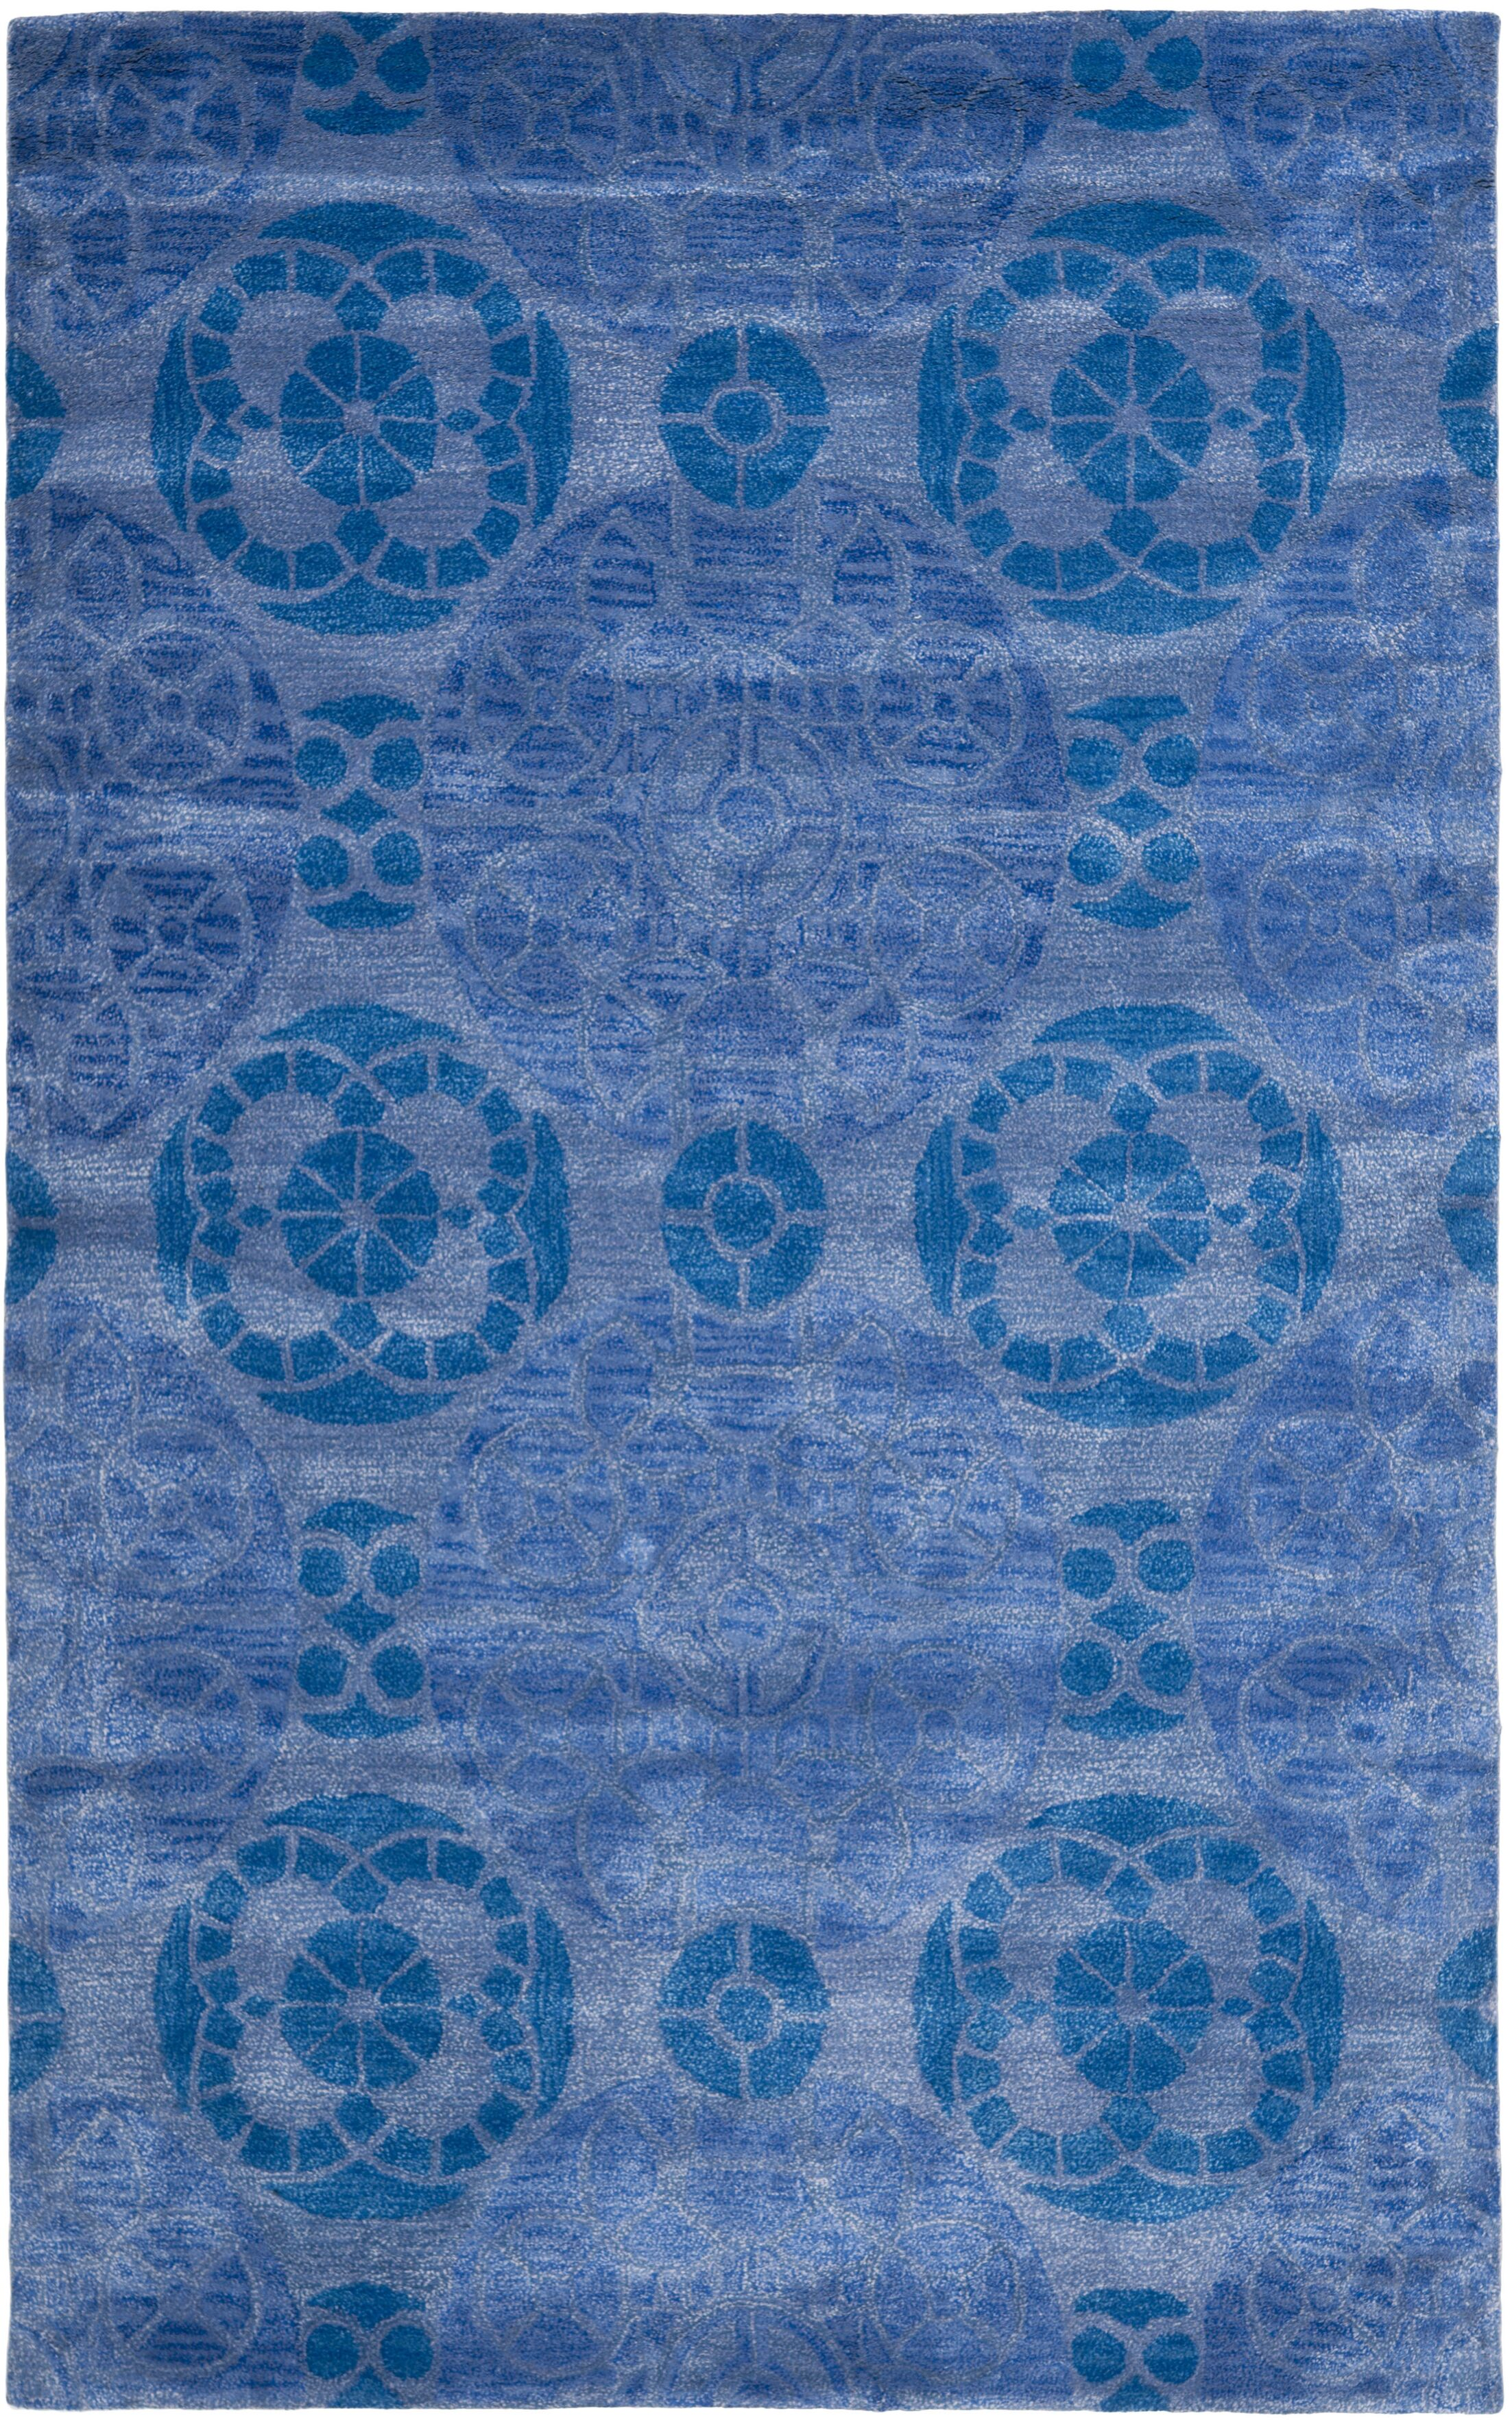 Kouerga Handmade Wool Blue Area Rug Rug Size: Rectangle 10' x 14'